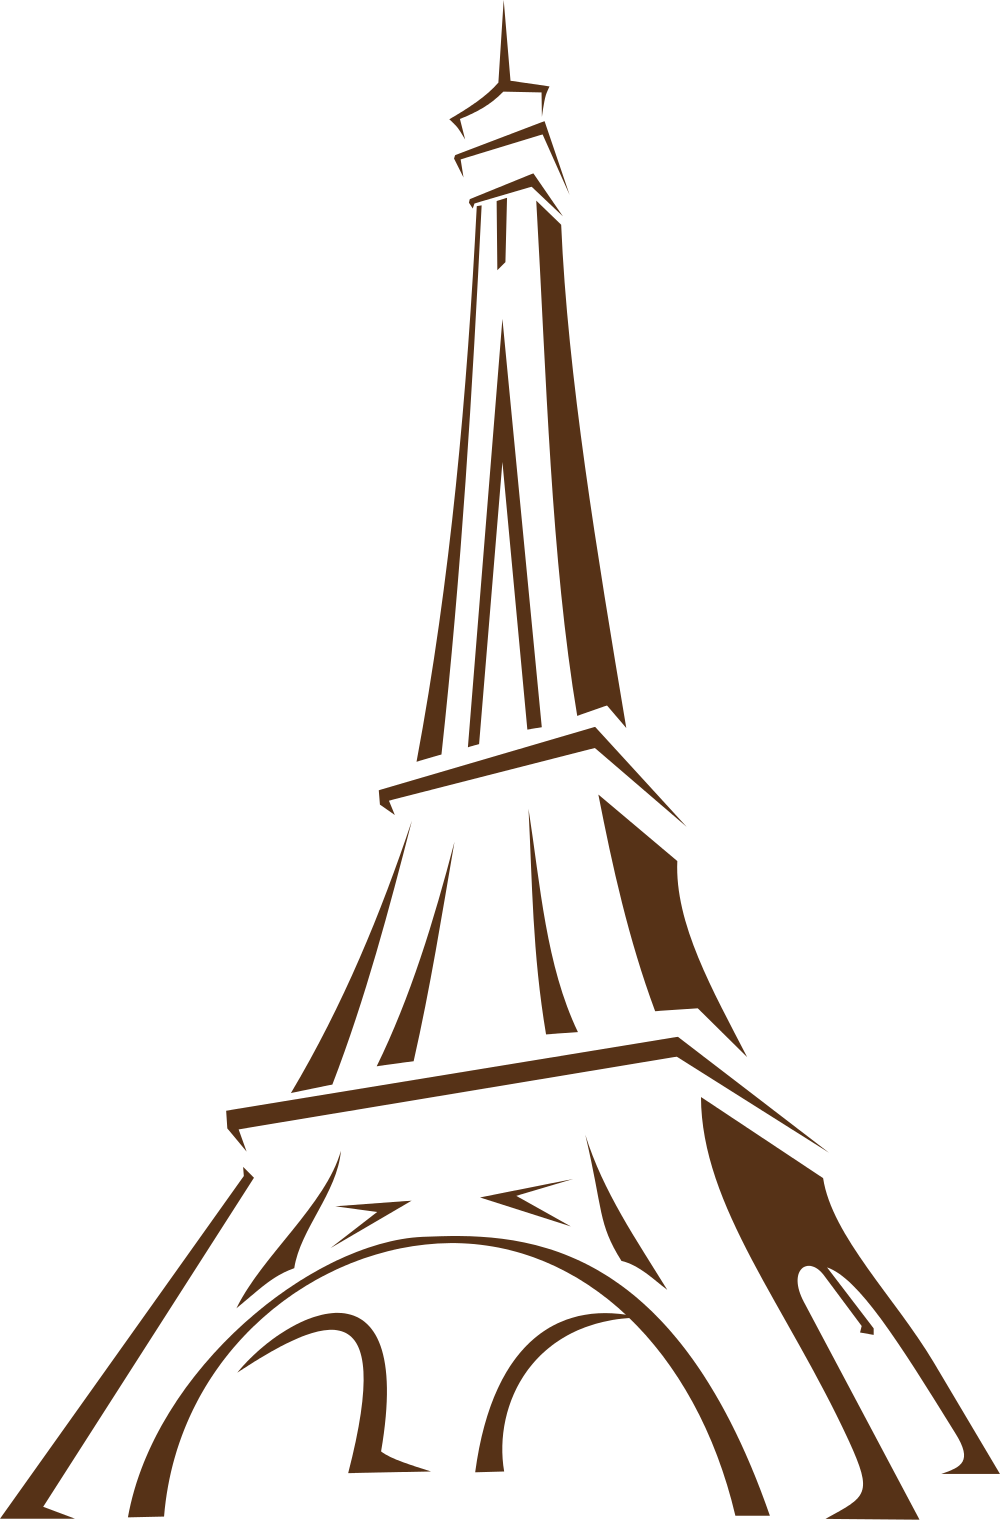 Tower clipart cut out. Eiffel at getdrawings com